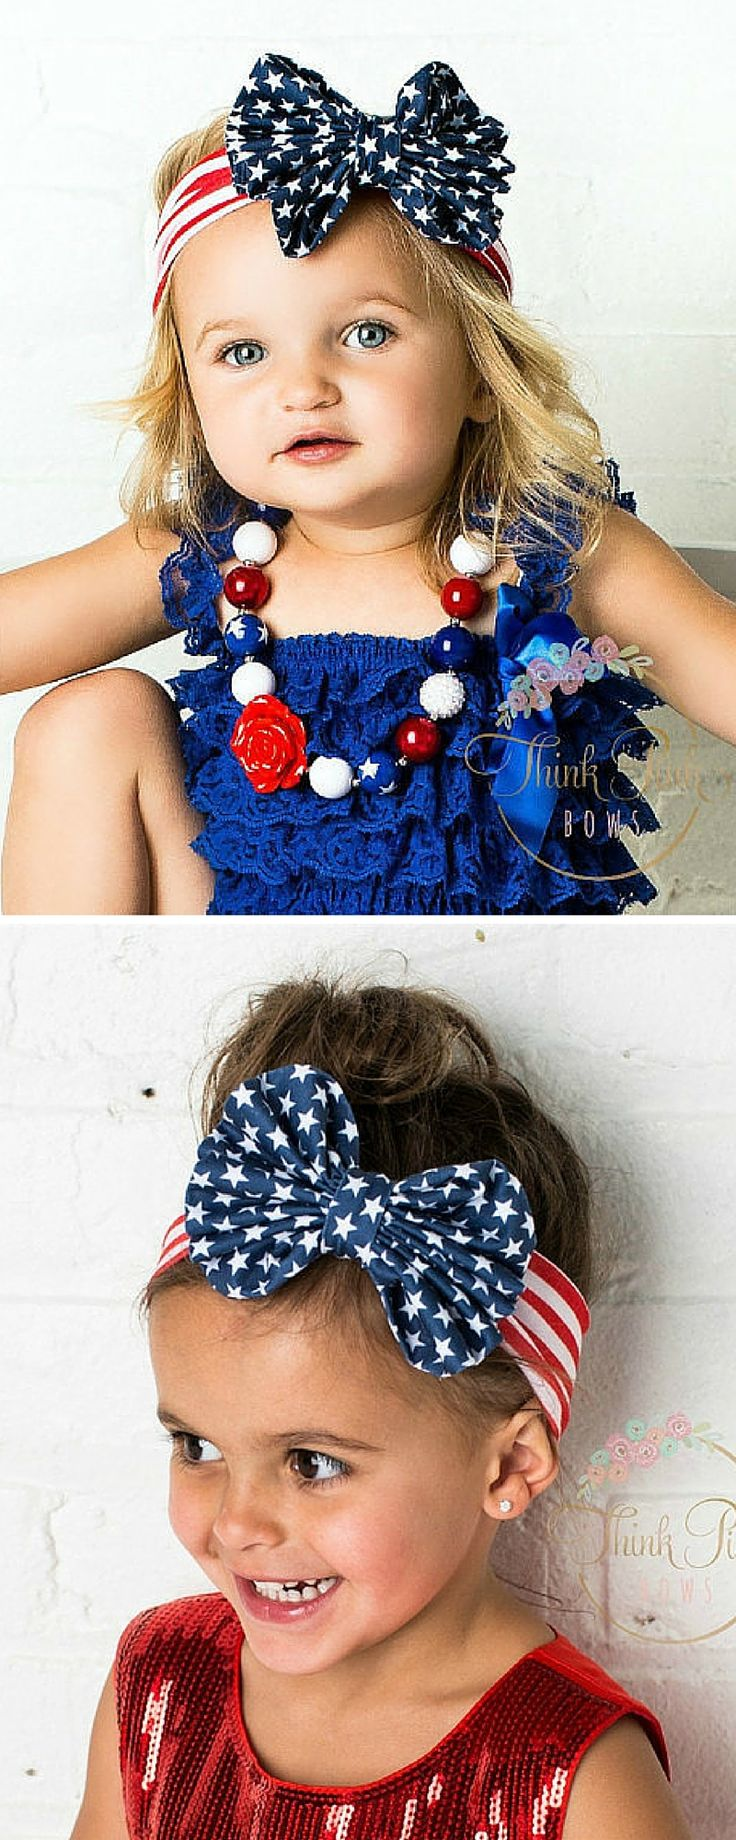 "Made from soft cotton jersey and with a big 4"" bow this stretchy headwrap is a must outfit for 4th of July! These blue and red colored headbands for little girls go with any Summer outfit. Ideal for ages 3 months and up. SHOP American flag headbands for kids at http://thinkpinkbows.com/products/patriotic-big-bow-headwrap 